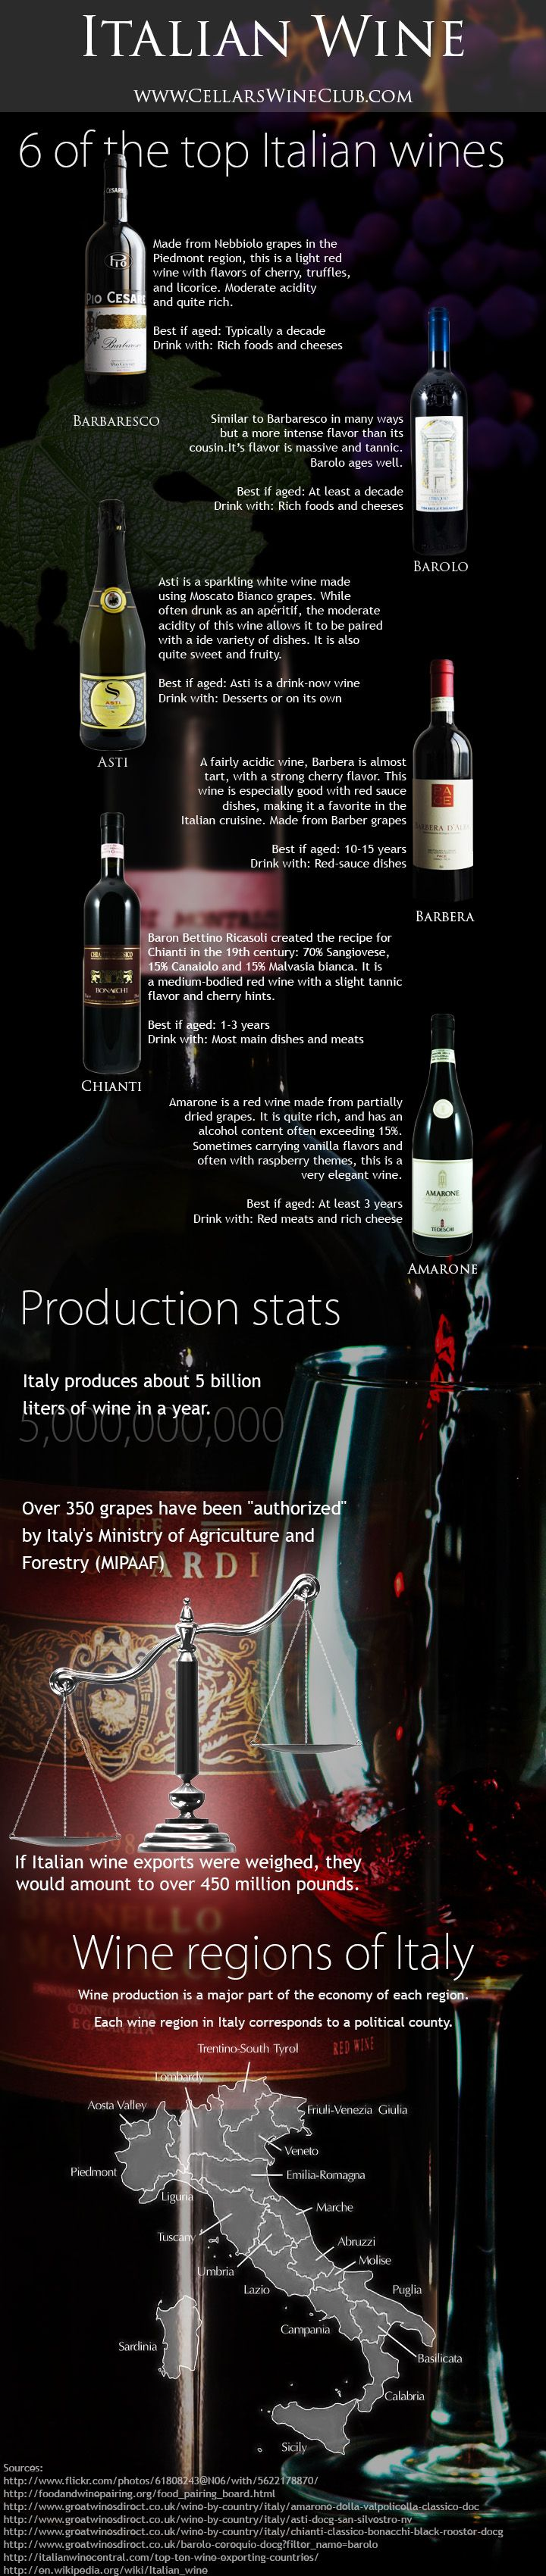 Italian wine is one of the greatest contributions to the wine industry and wine enthusiasts worldwide. Read on to discover the vineyards of lovely Italy.